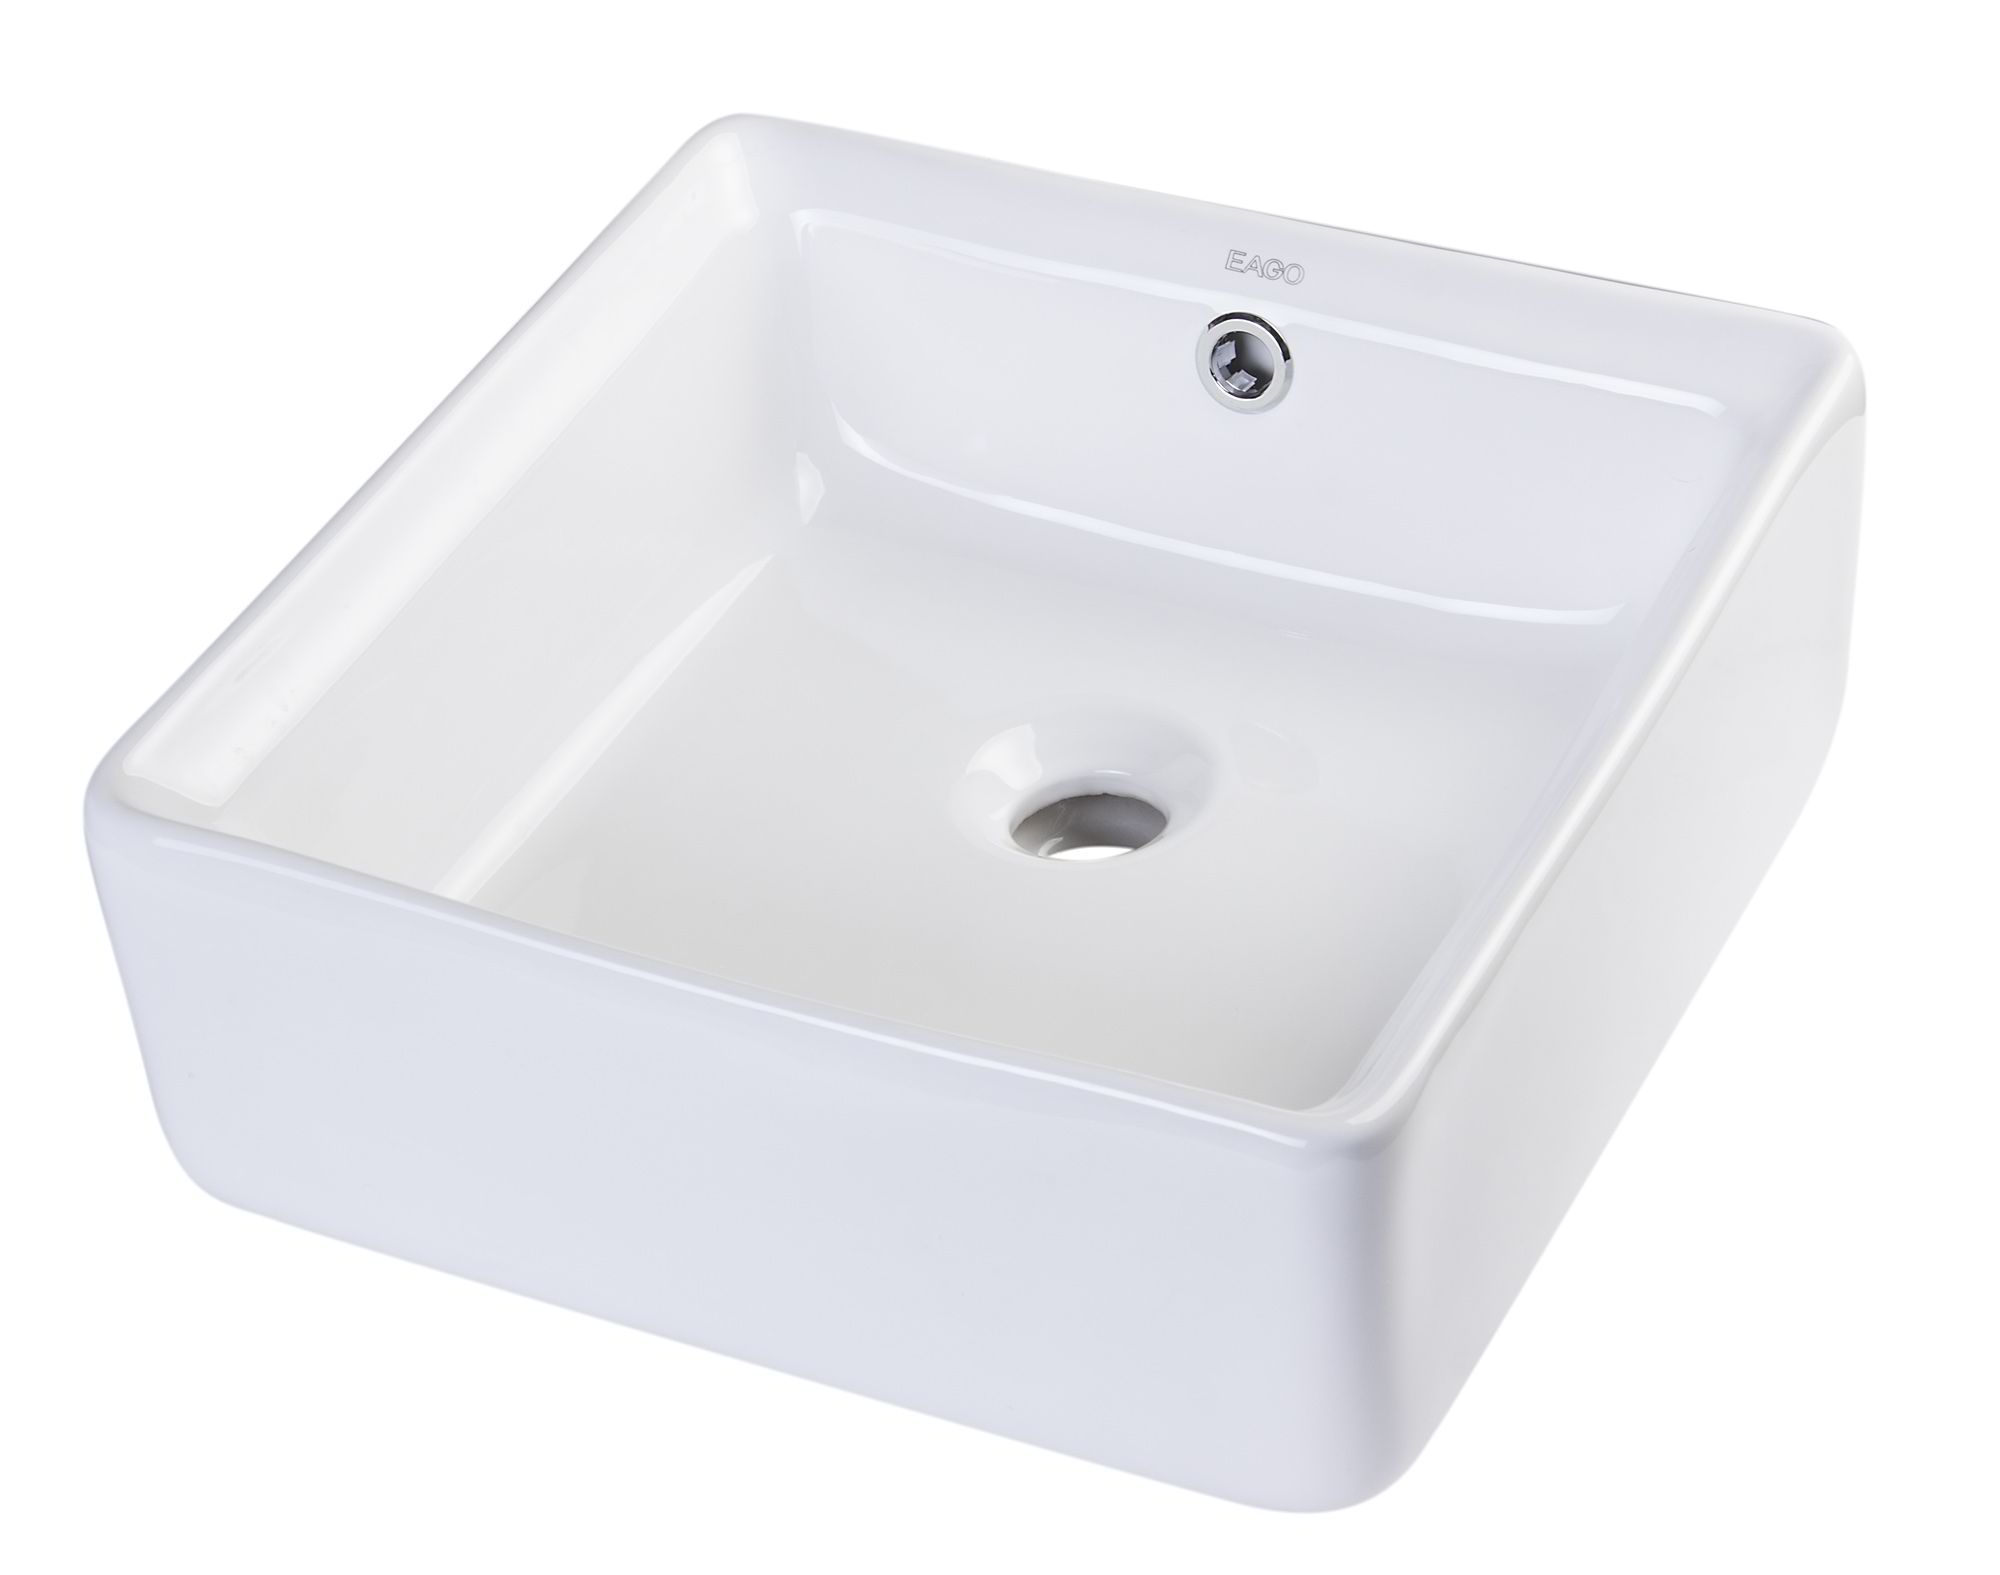 "EAGO BA130 15"" SQUARE CERAMIC ABOVE MOUNT BATHROOM BASIN VESSEL SINK"